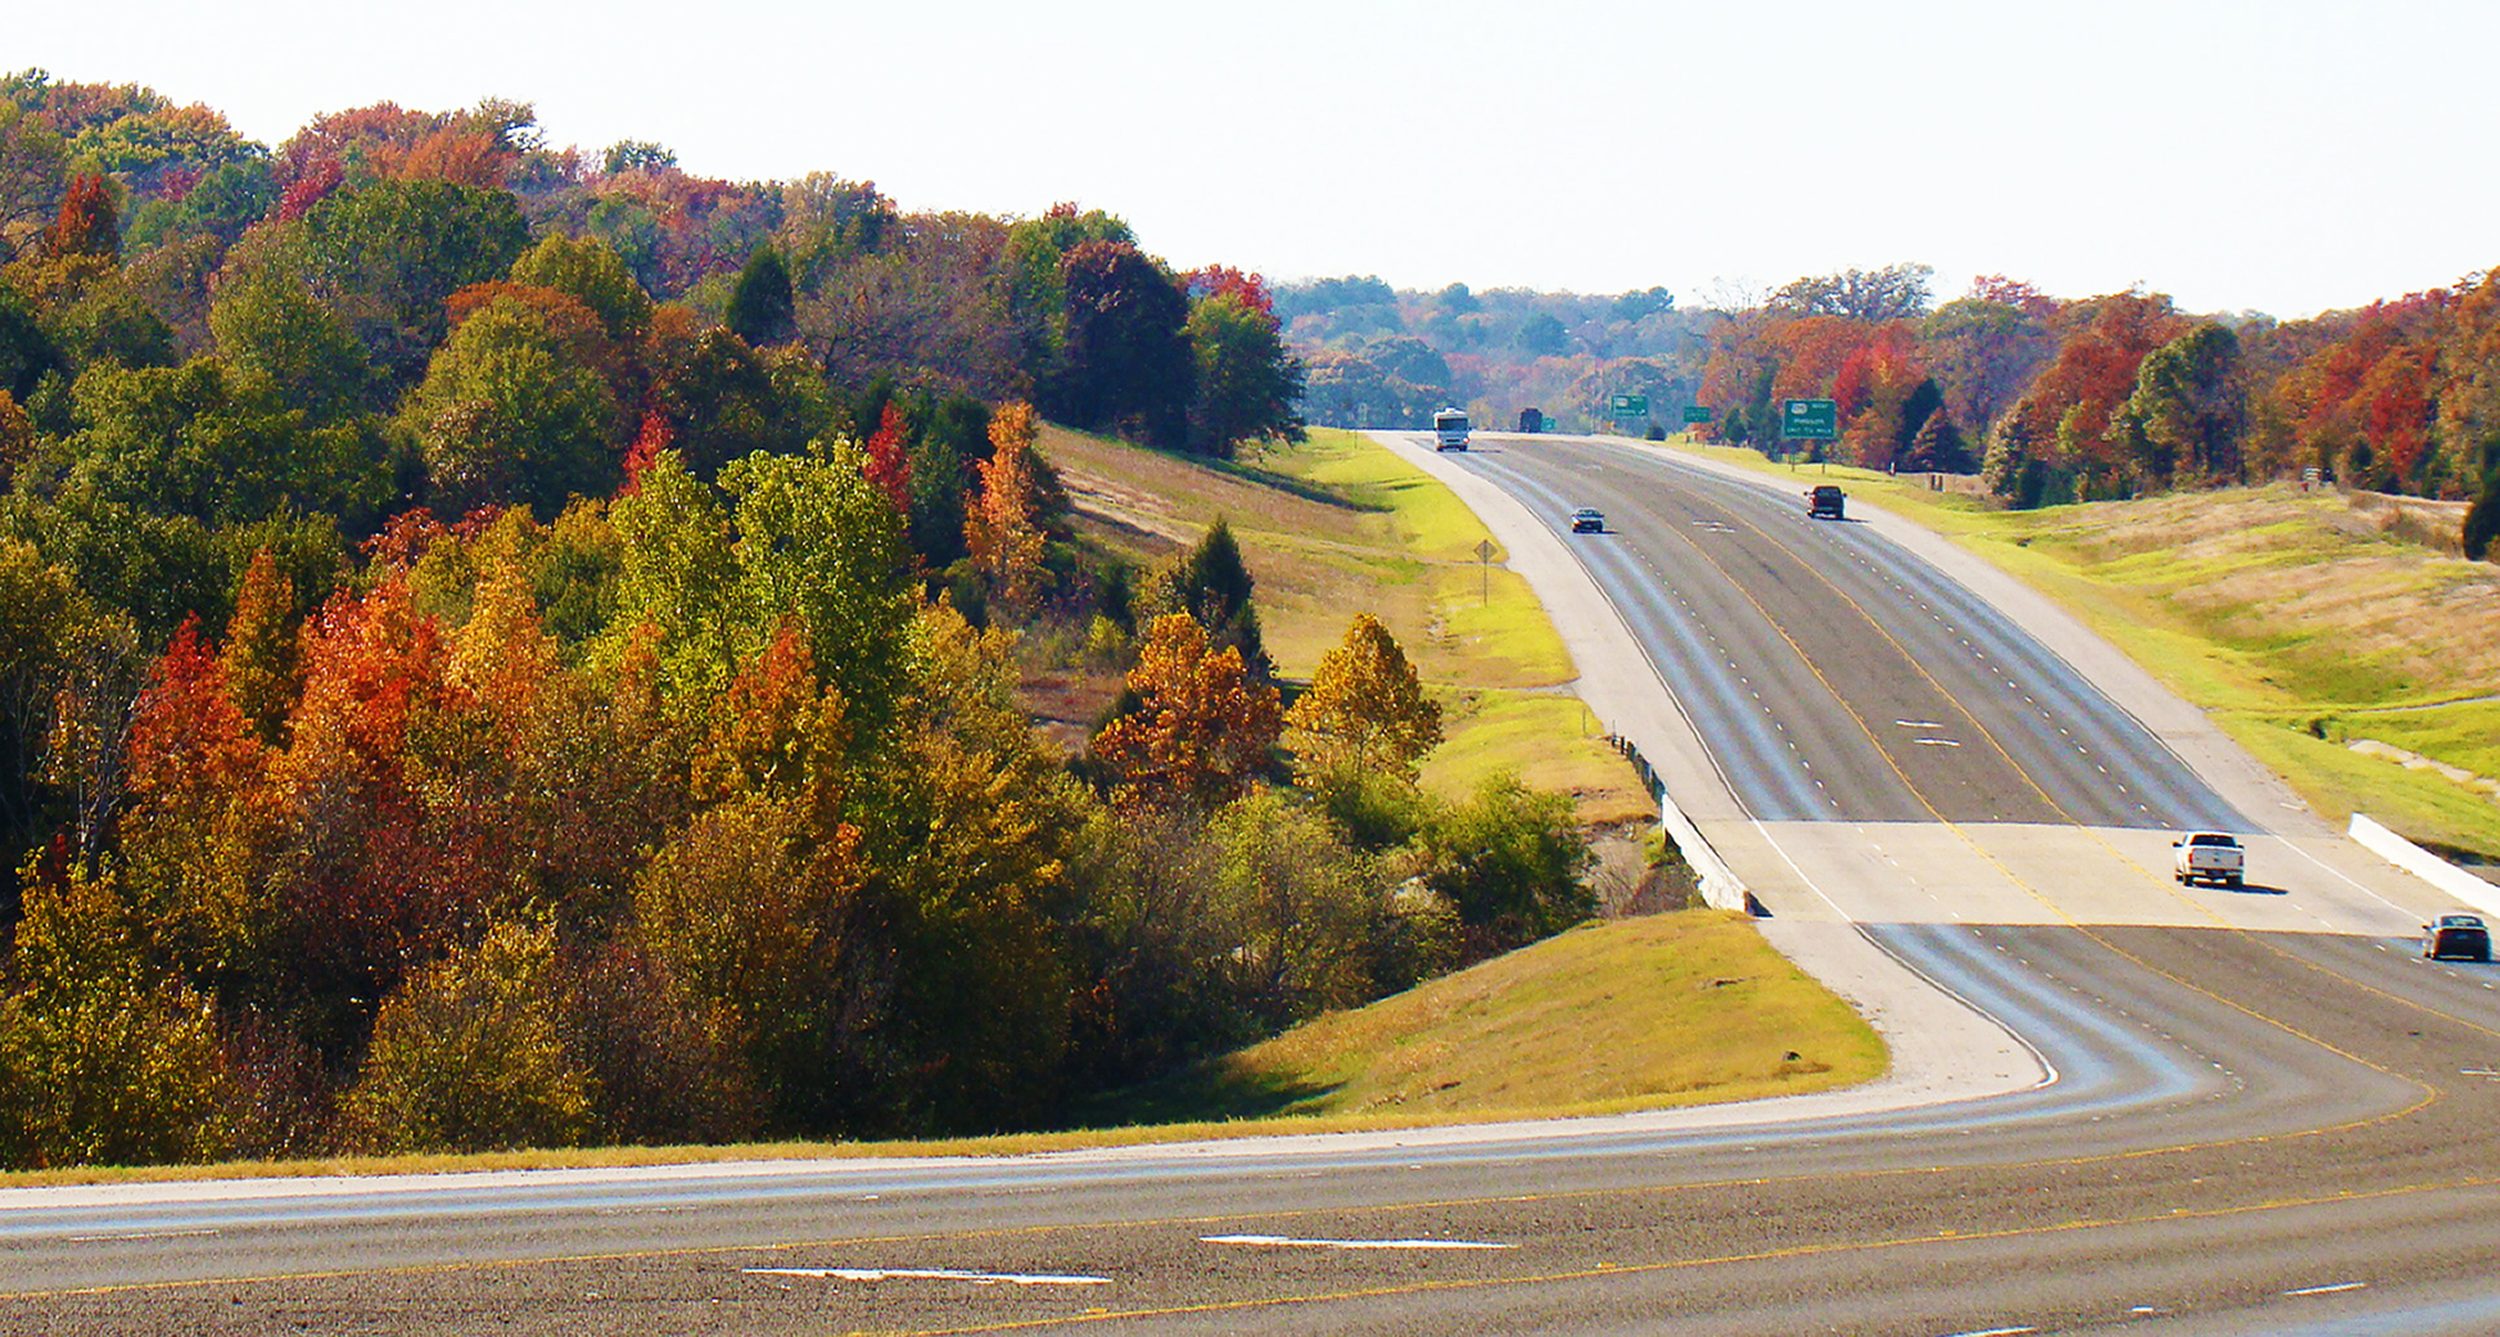 City Of Athens Department Of Tourism Gears Up For Second Annual Scenic Fall Foliage Trail